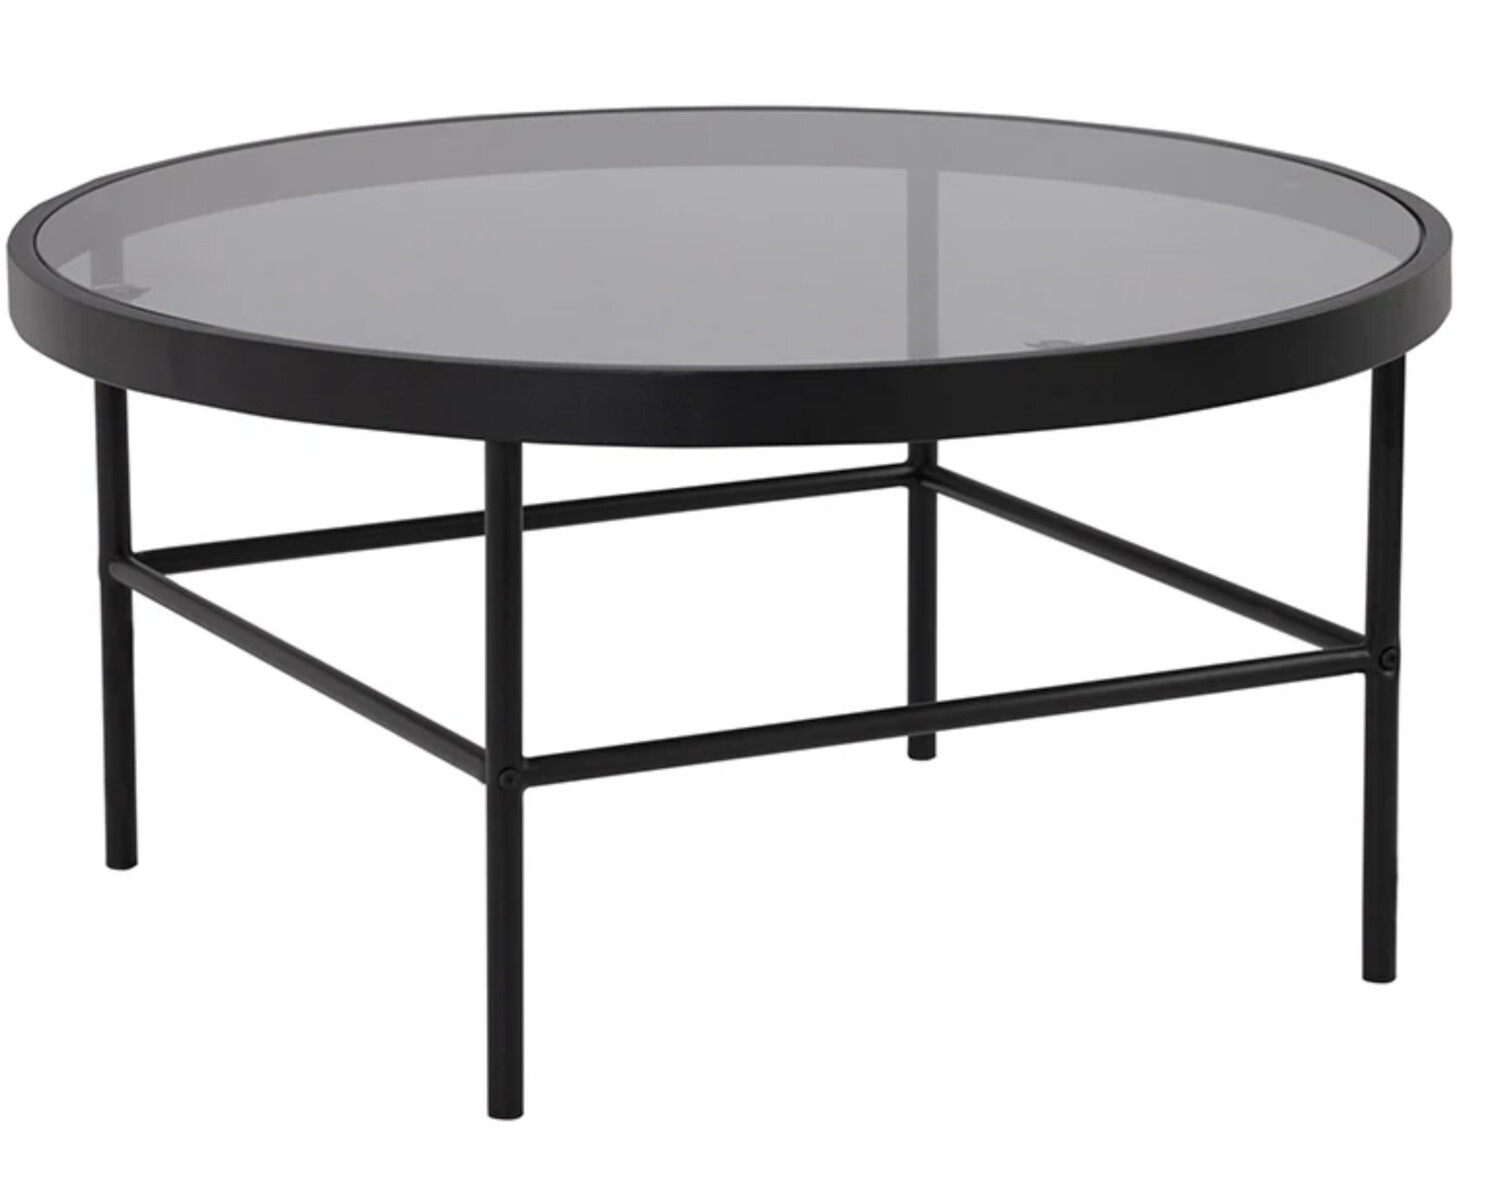 FURNITURE - ROUND BLACK GLASS COFFEE TABLE